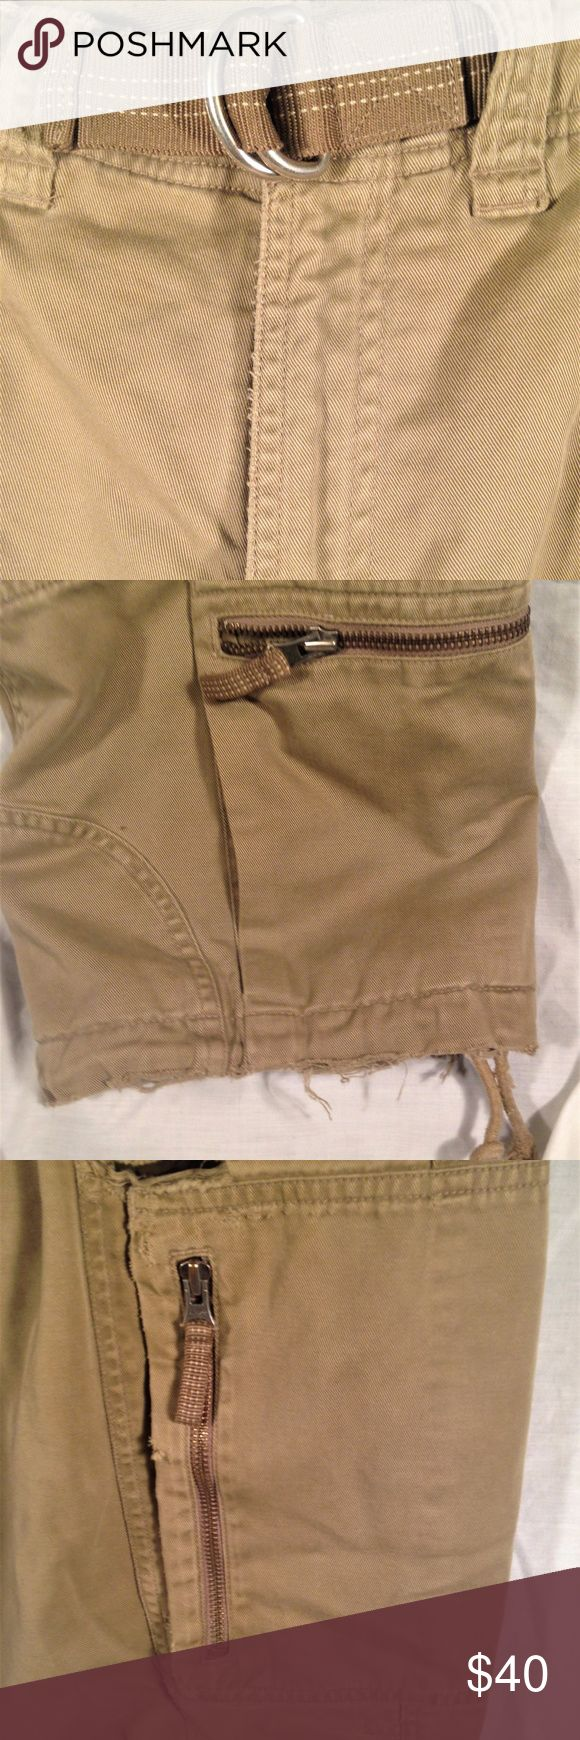 """Old Navy Beige Tan Fleece Lined Winter Cargo Pants Thank You for choosing Kross Threads! Condition: Good Pre-Owned Condition. Frayed Cuffs, Small tear by knee. While we strive for perfection, If any flaws are found please contact us for a solution. Label: Old Navy Material: 100% Cotton Color: Khaki Size: 33/32 Country: india Measurements Waist : 33"""" Inseam: 30"""" Our mission is to provide unique quality style to your wardrobe Old Navy Pants Cargo"""